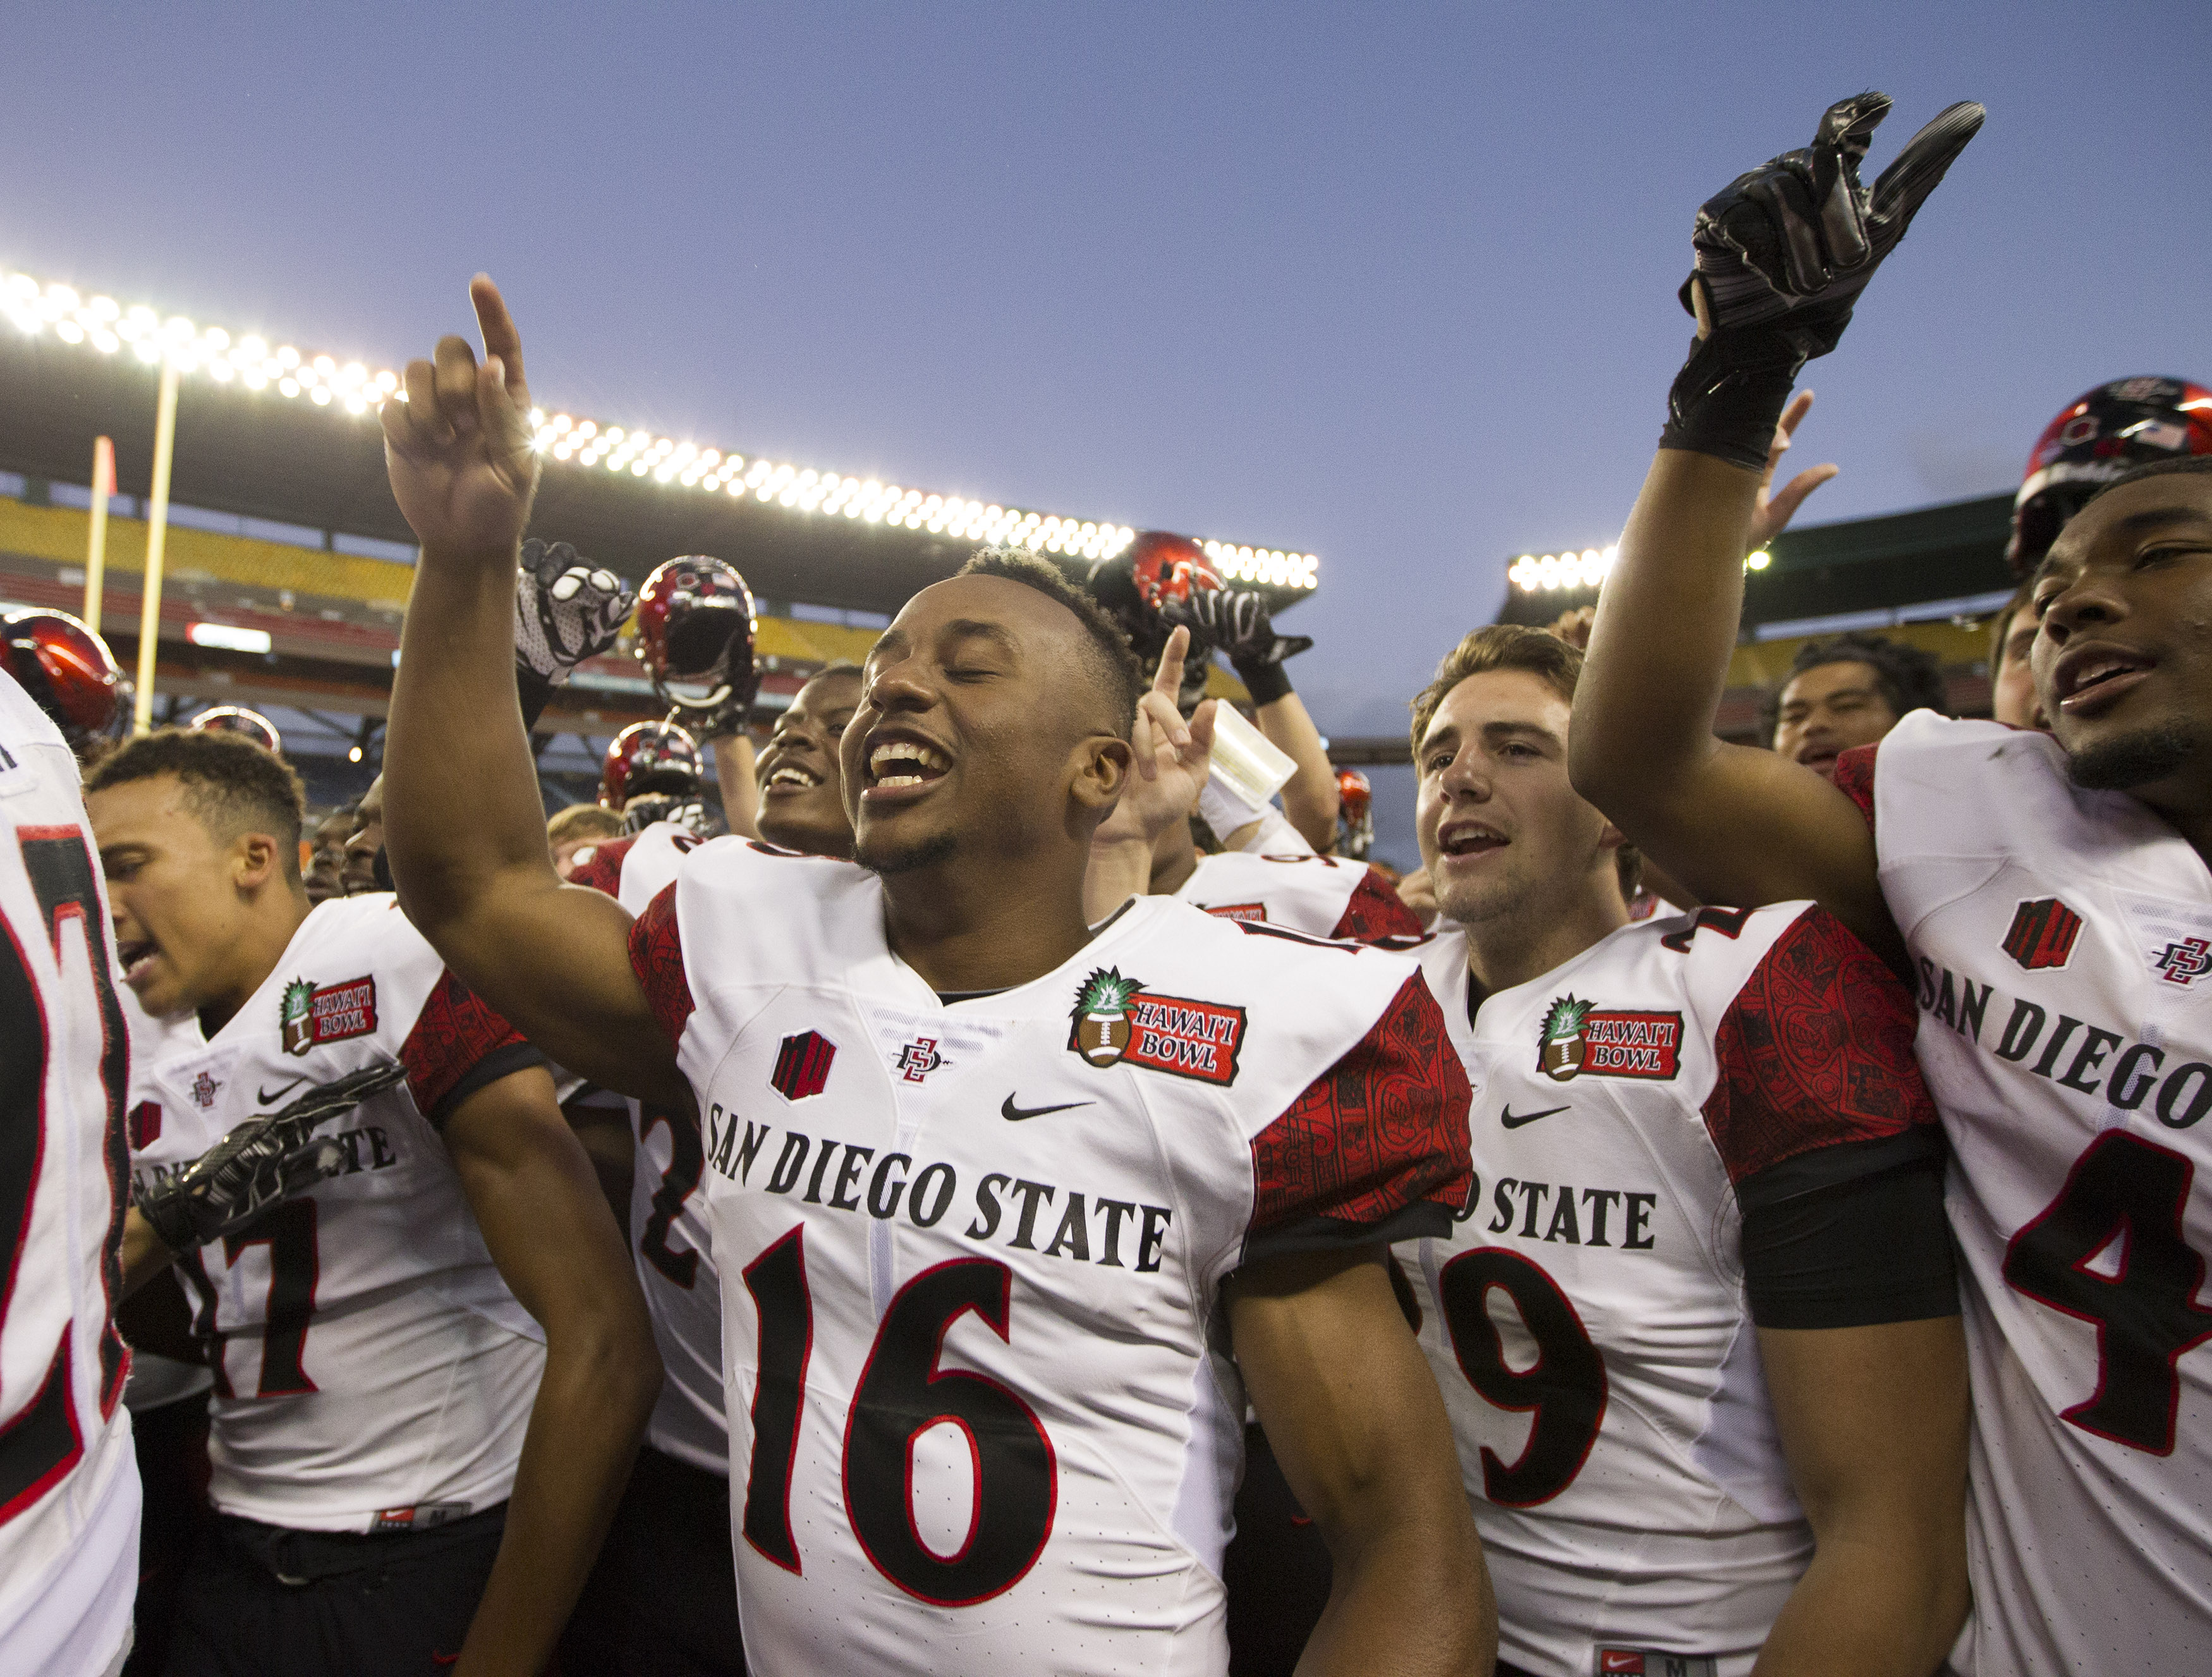 San Diego State defensive back Dwayne Parchment (16) along with his teammates sing their school song after winning the Hawaii Bowl NCAA college football game over Cincinnati, Thursday, Dec. 24, 2015, in Honolulu. San Diego State won 42-7. (AP Photo/Eugene